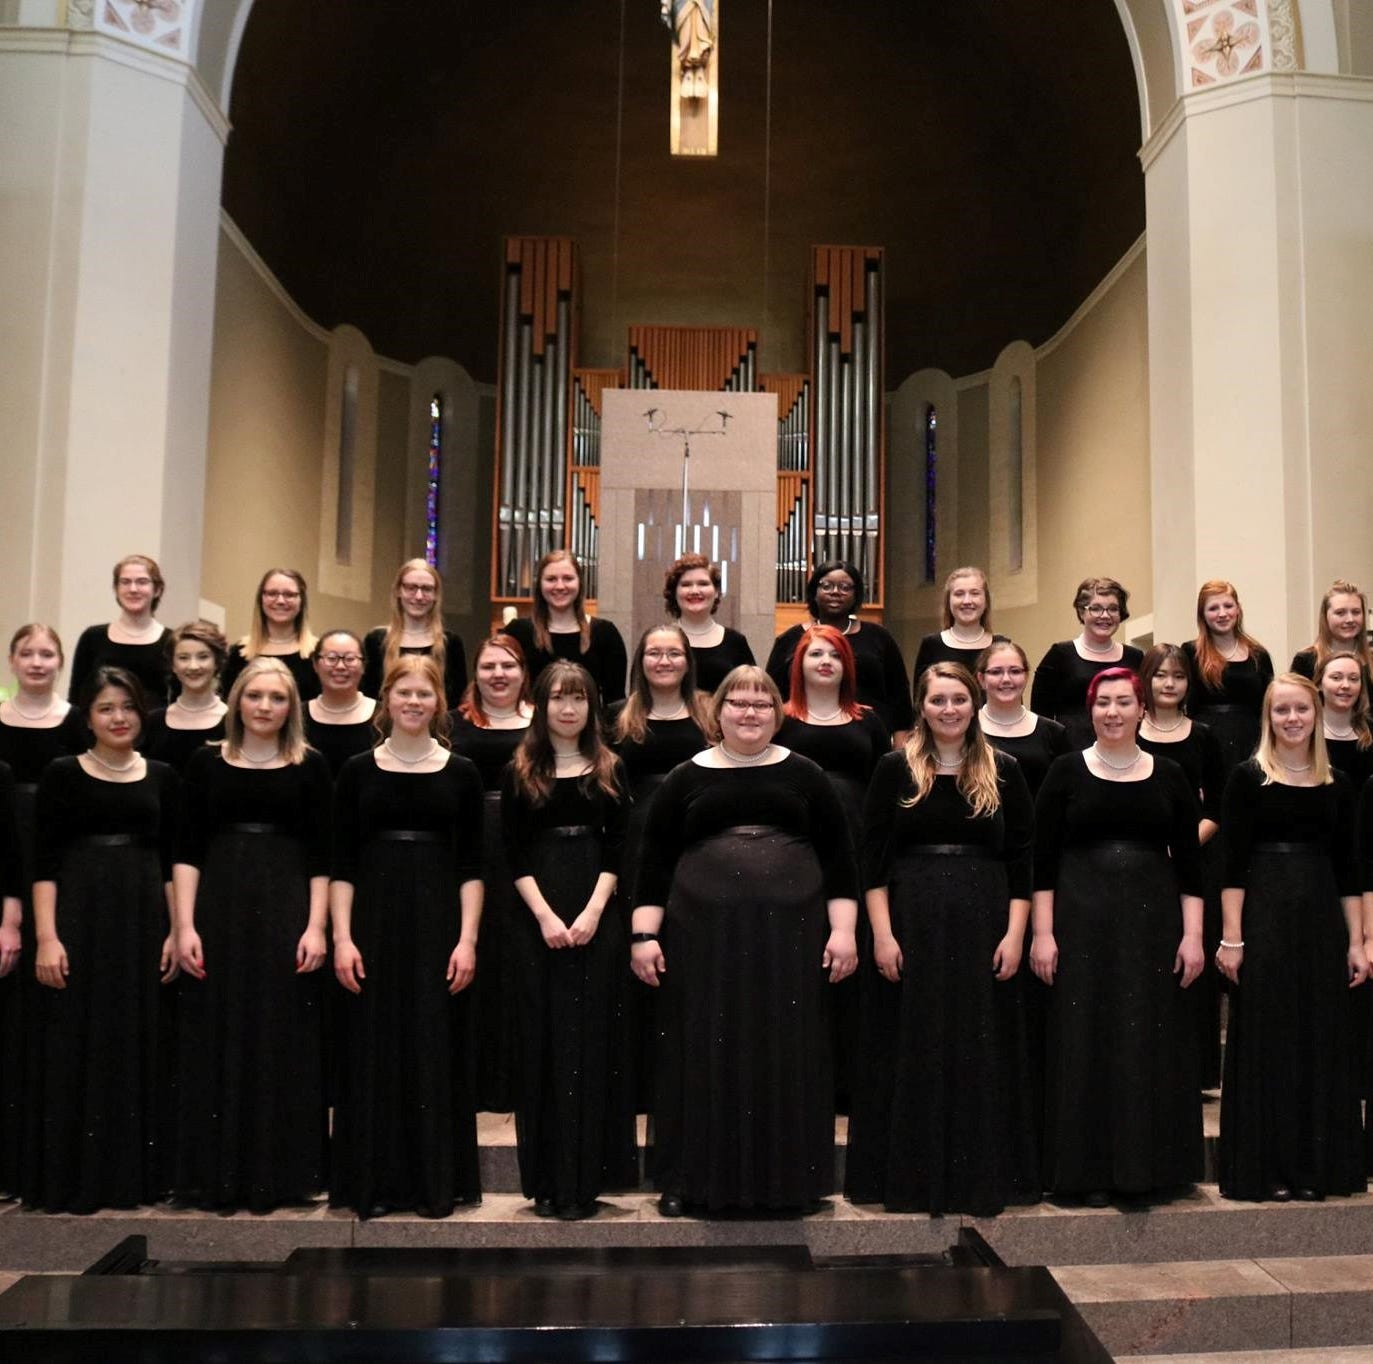 4 universities' women's choirs team up for a good cause